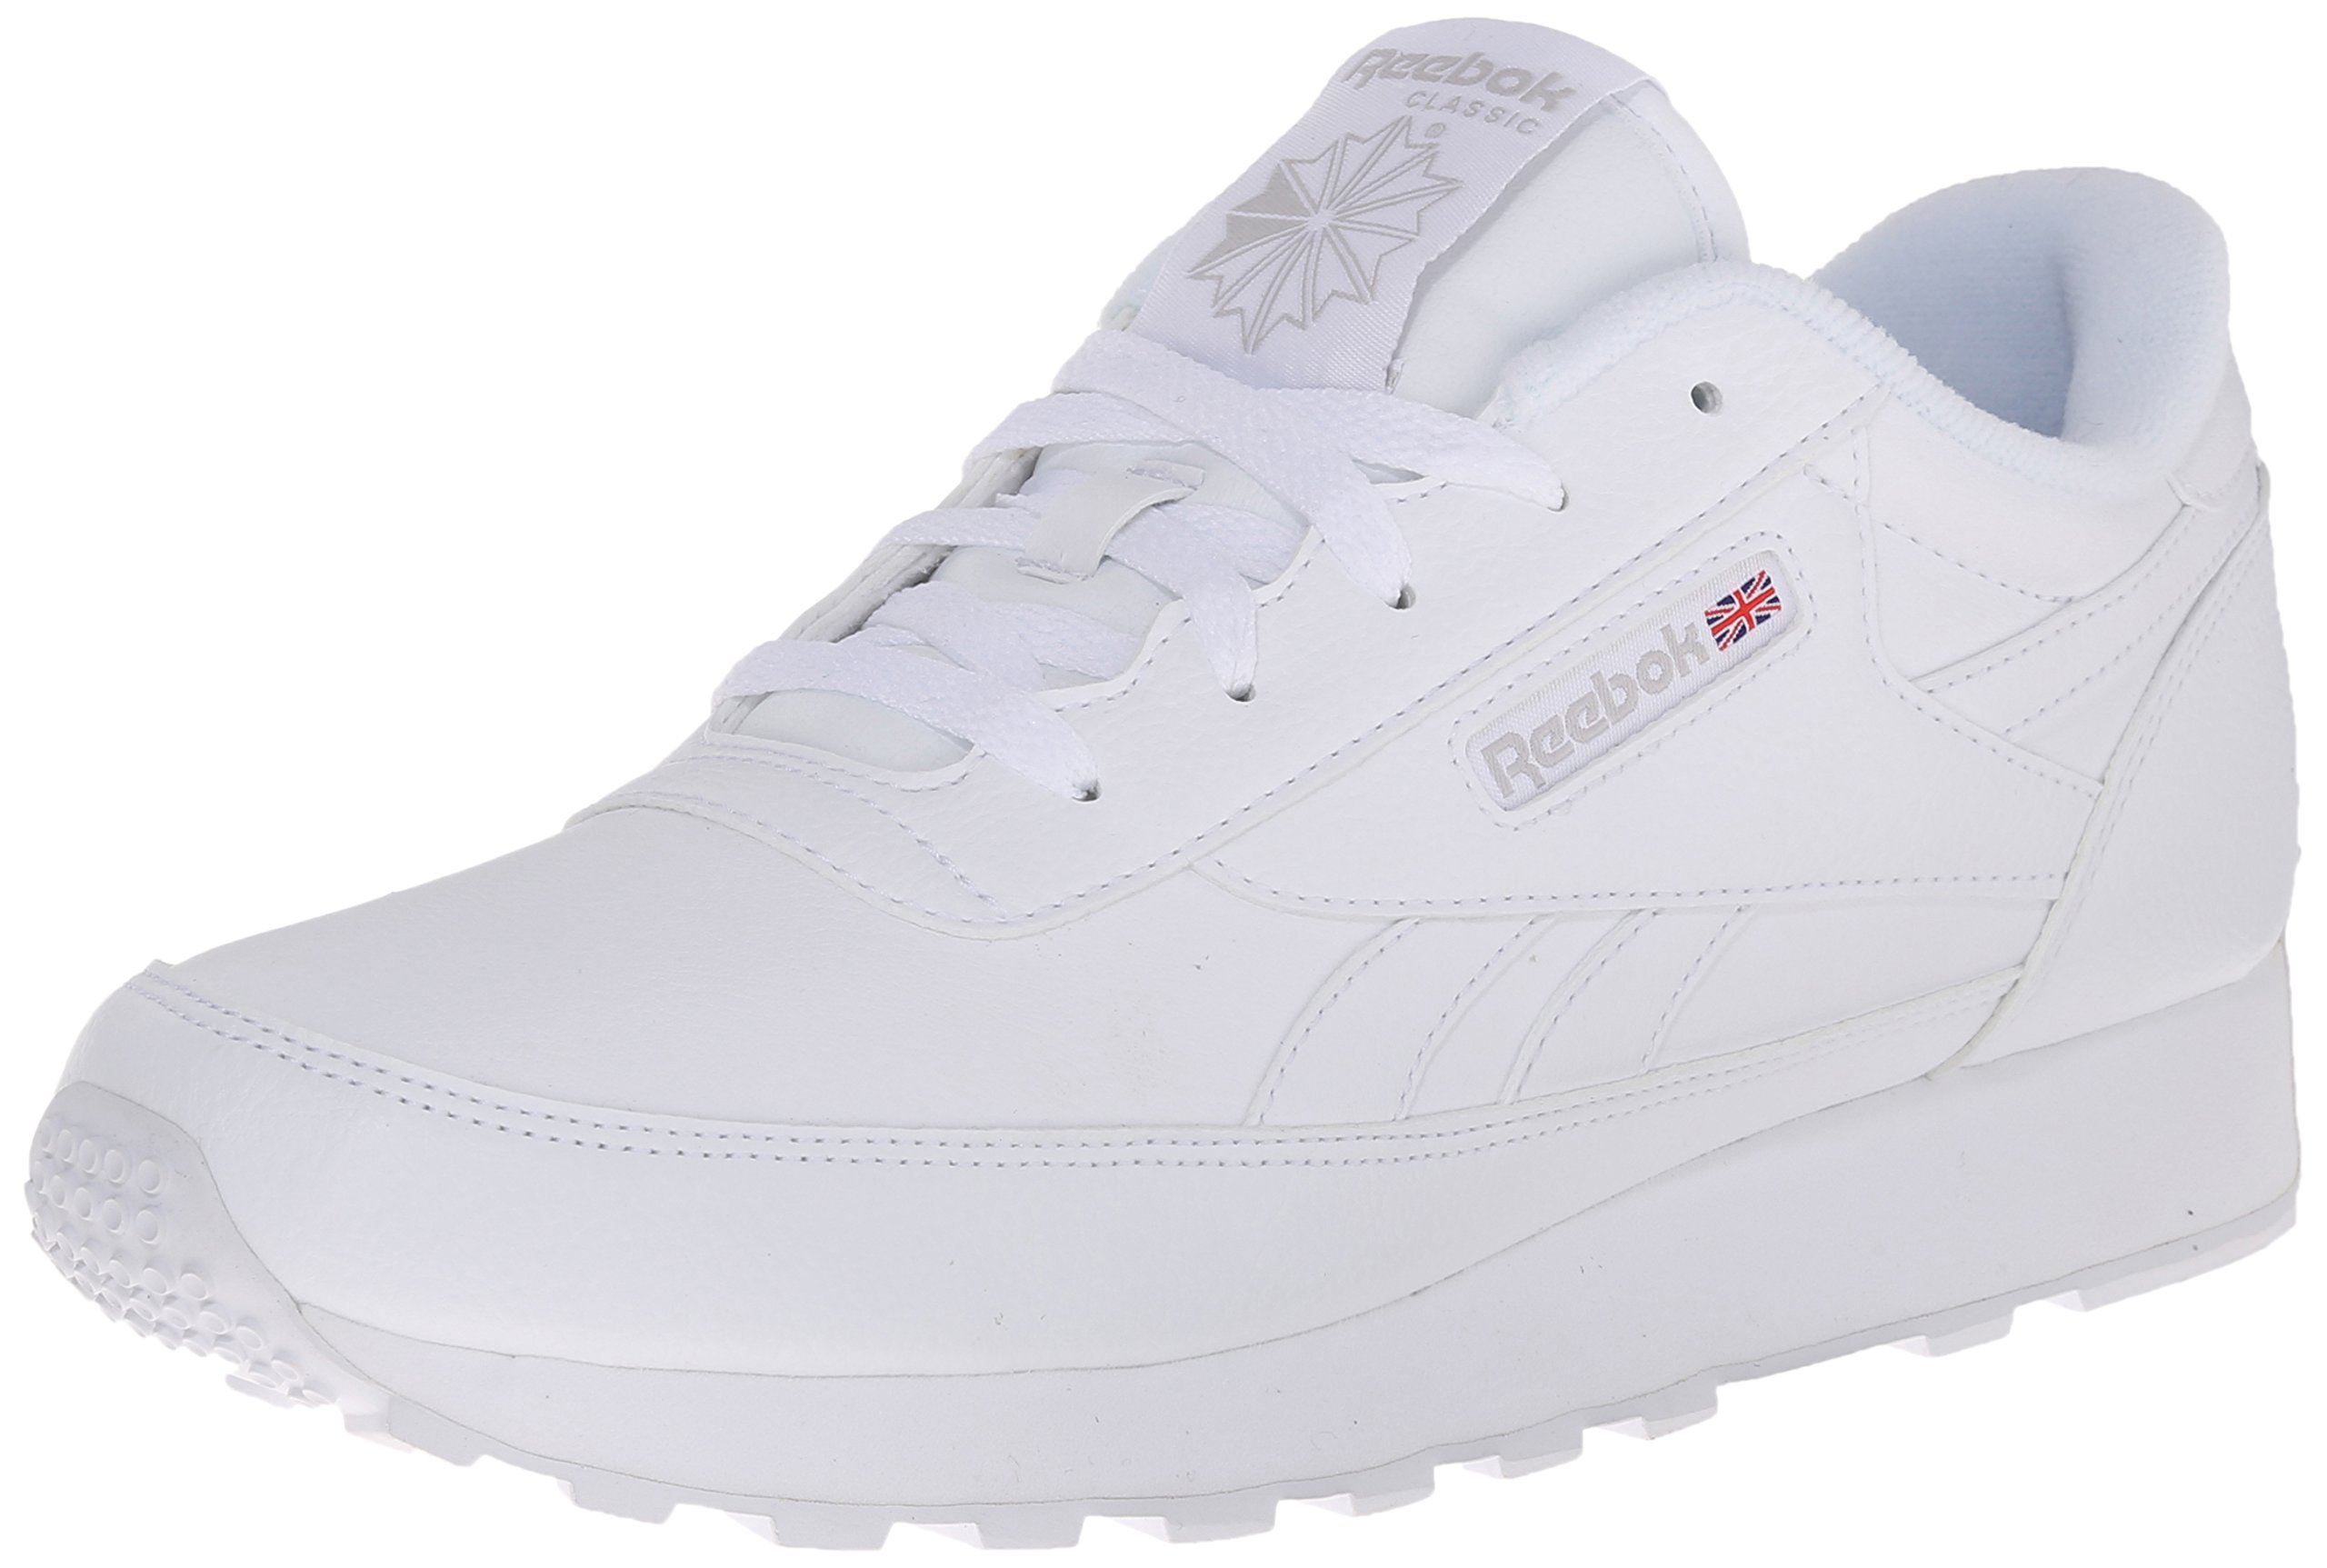 Reebok Women's CL Renaissance Fashion Sneaker, White/Steel, 7.5 D US